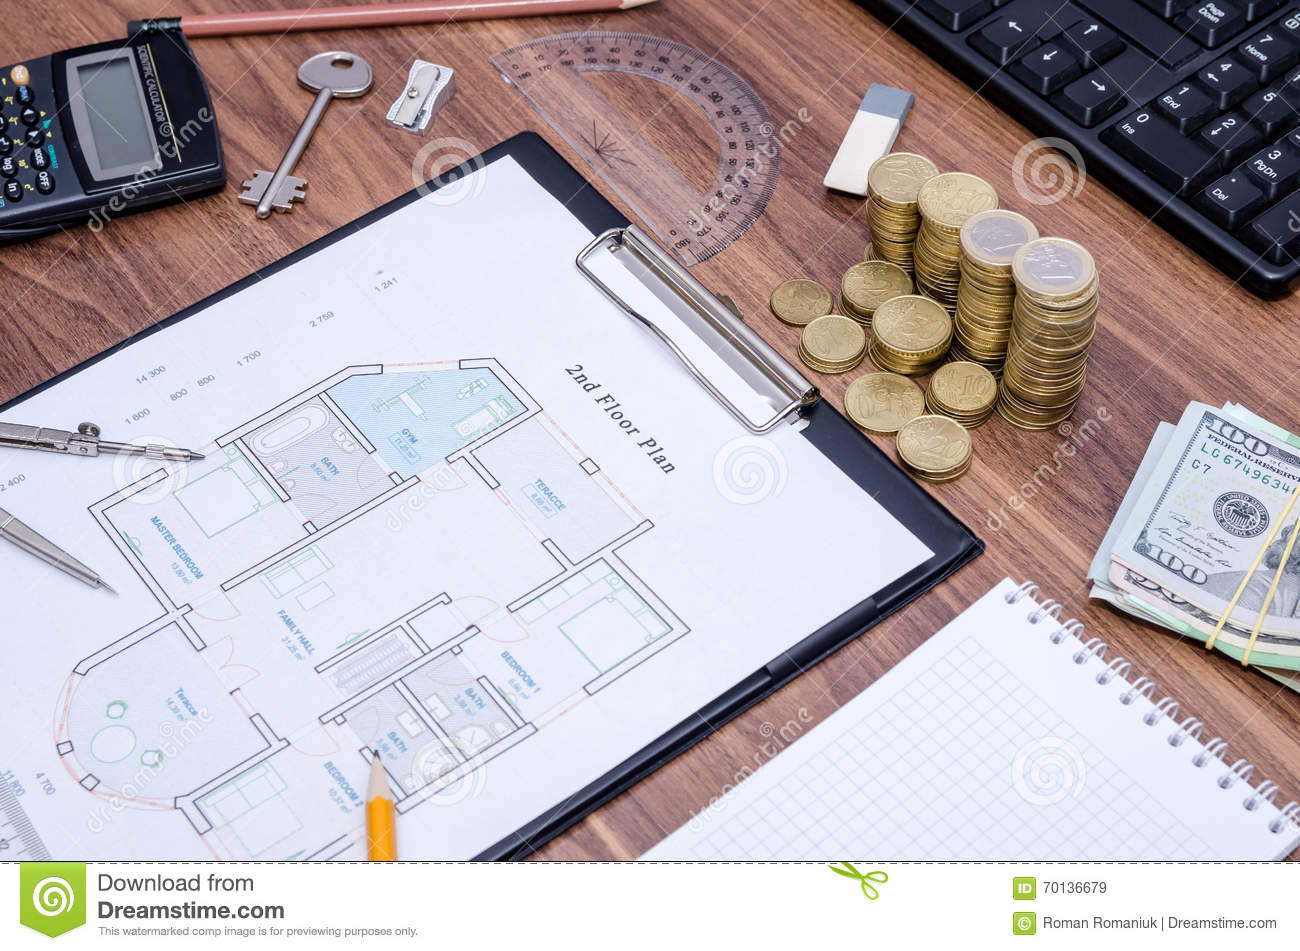 Design drawings calculator p royalty free stock image for Home building calculator